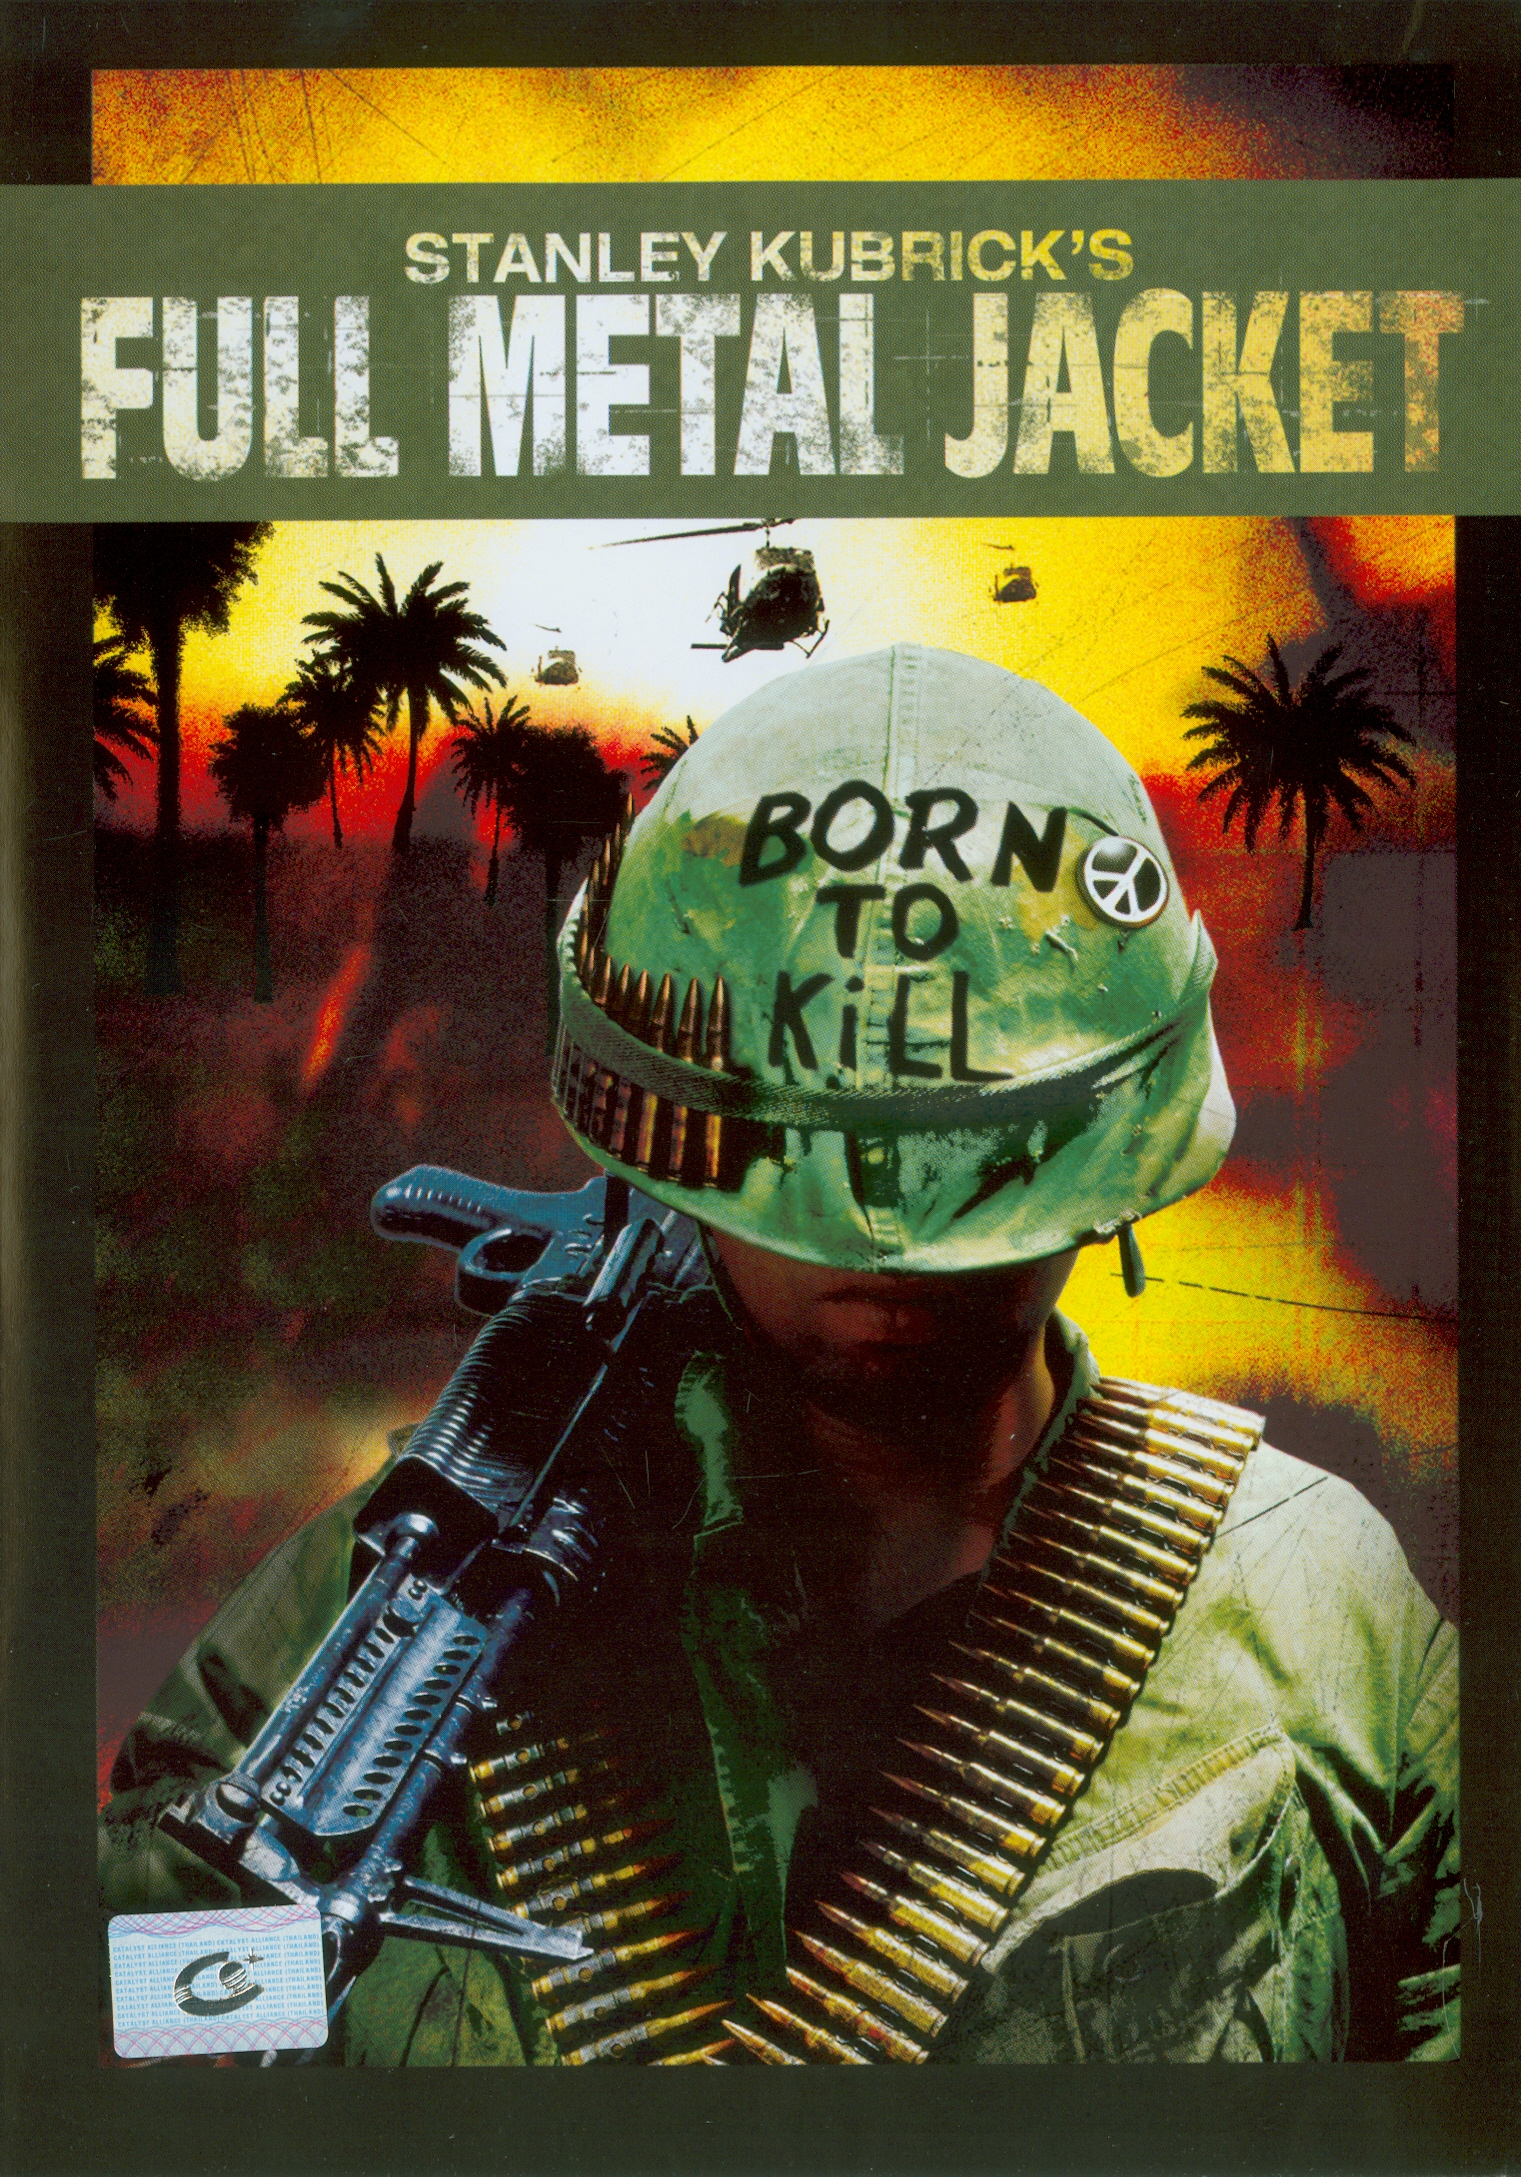 Full metal jacket [videorecording] /Warner Bros.,presents ; produced and directed by Stanley Kubrick||เกิดเพื่อฆ่า